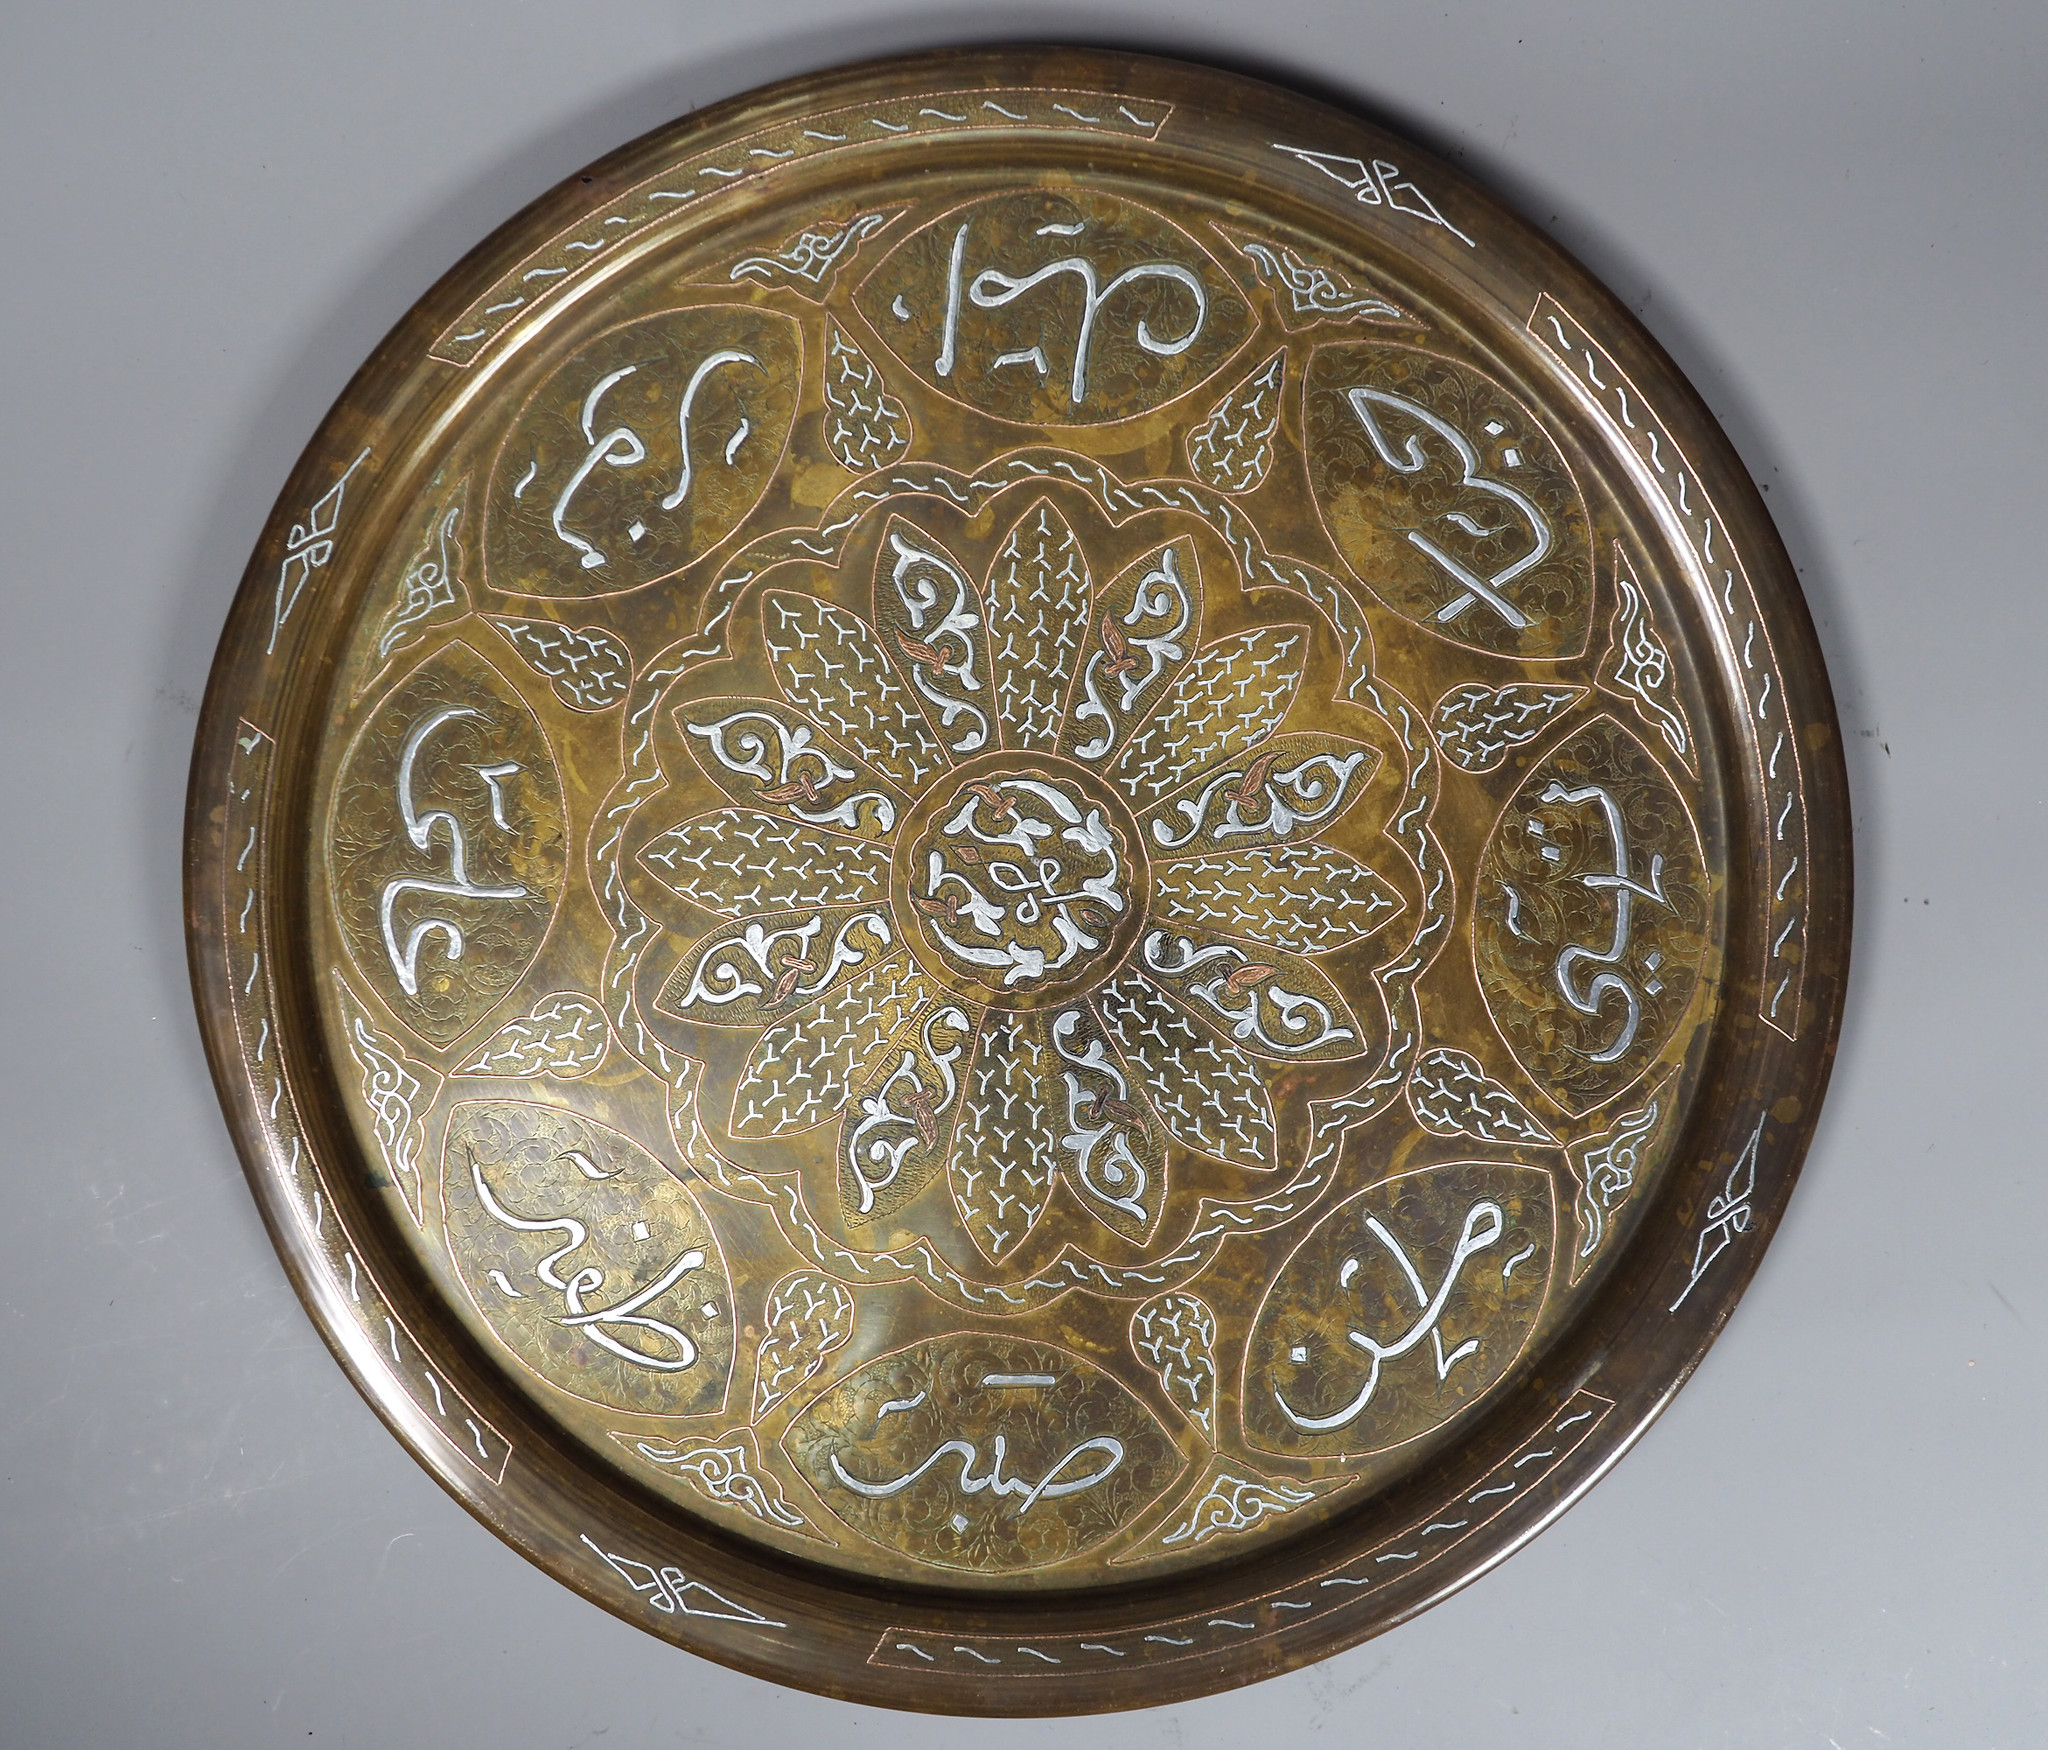 65 cm Antique ottoman orient Islamic  Hammer Engraved Brass table Tray Syria Morocco, Egypt Mamluk Cairoware with arabic calligraphy 21/D